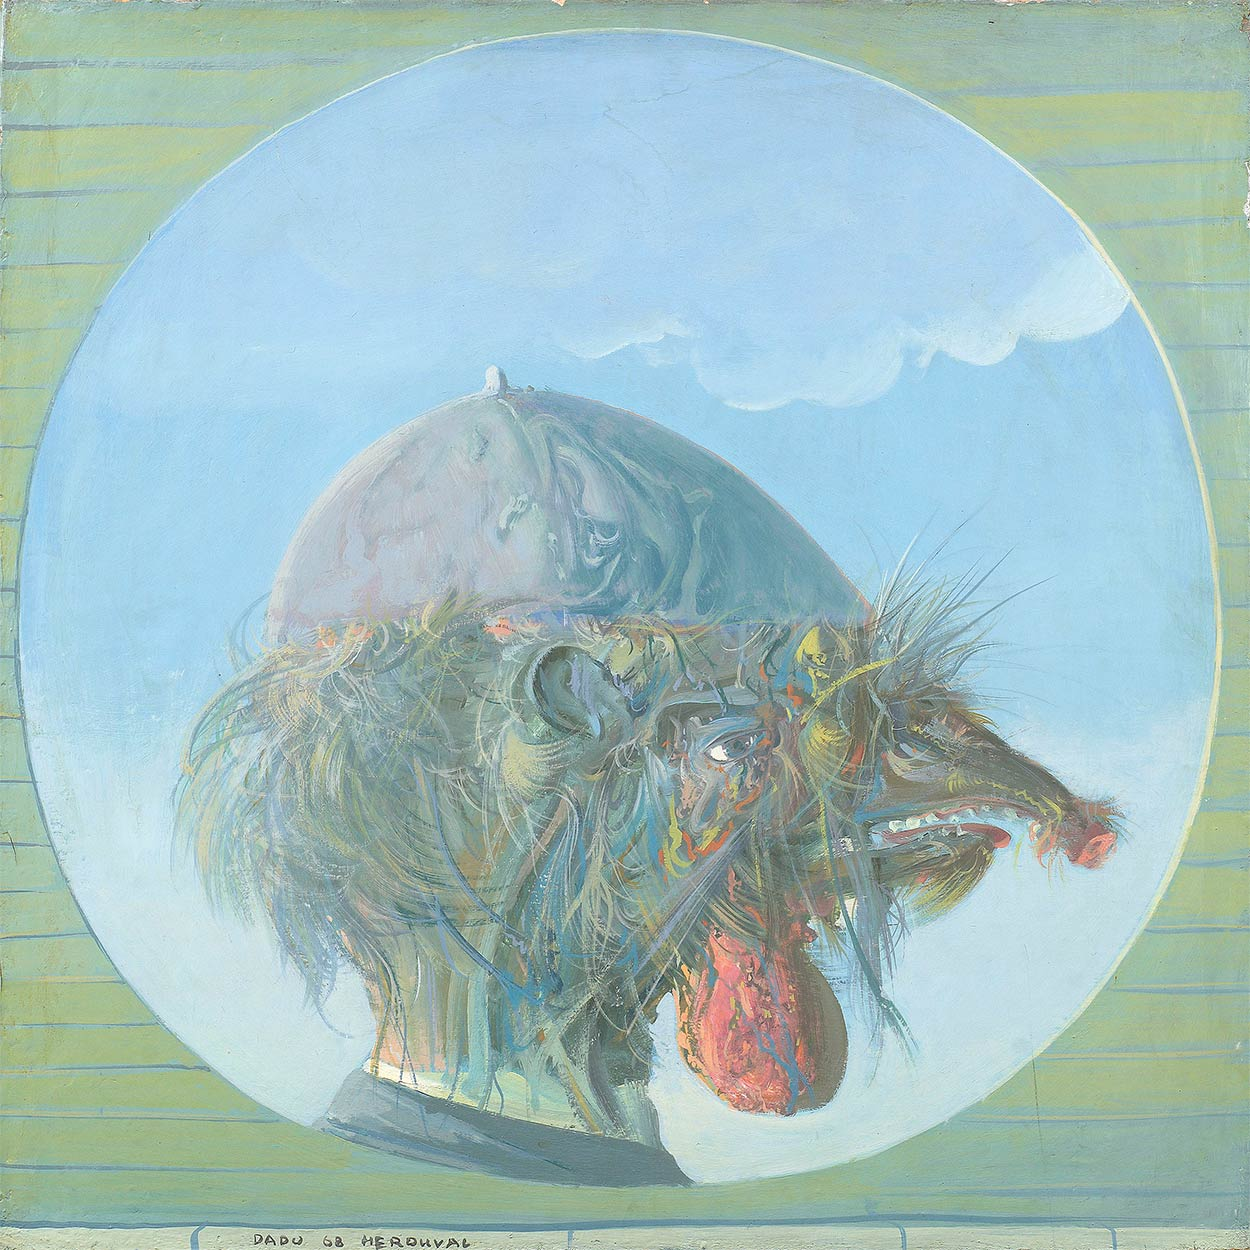 Dado's painting: Untitled, 1968